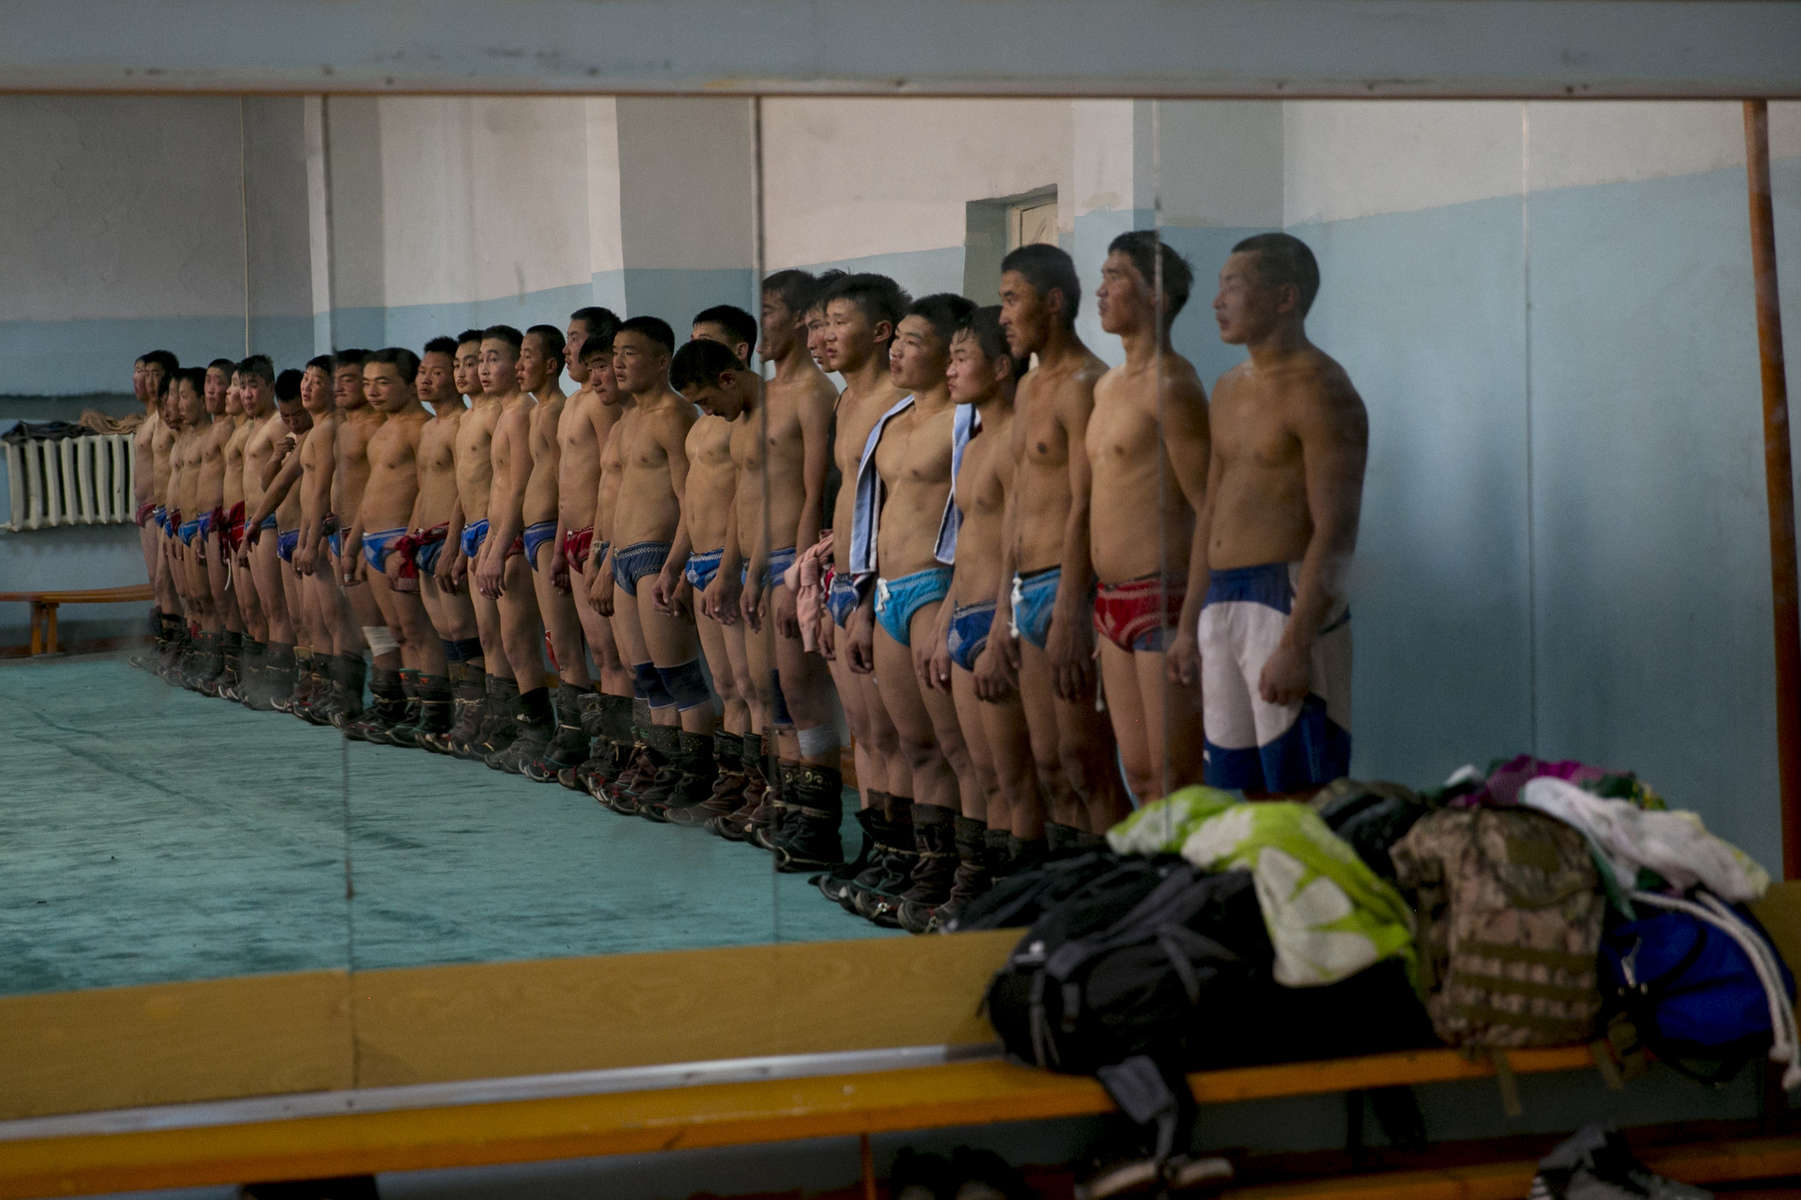 Mongolian wrestlers stand at attention before starting their practice at a local wrestling school. Mongolia is the most sparsely populated country on earth, but its people are some of the strongest. In Mongolia, wrestling is the most important sport that runs deep into its culture along with horsemanship and archery. Going back for hundreds of years, history books tell the story of how Genghis Khan considered wrestling to be an important way to keep his army combat ready while back in the Qing Dynasty (1646–1911) regular wrestling events were held. In Mongolia's capitol city, Ulan Batar is home to many wrestling schools where almost daily you can see dozens of young men sweating in crowded gyms while in schools both girls and boys are taught some wrestling techniques.While my photo story gives a real behind the scenes look, it is unusual for a woman to document this macho scene of sweat and endurance.